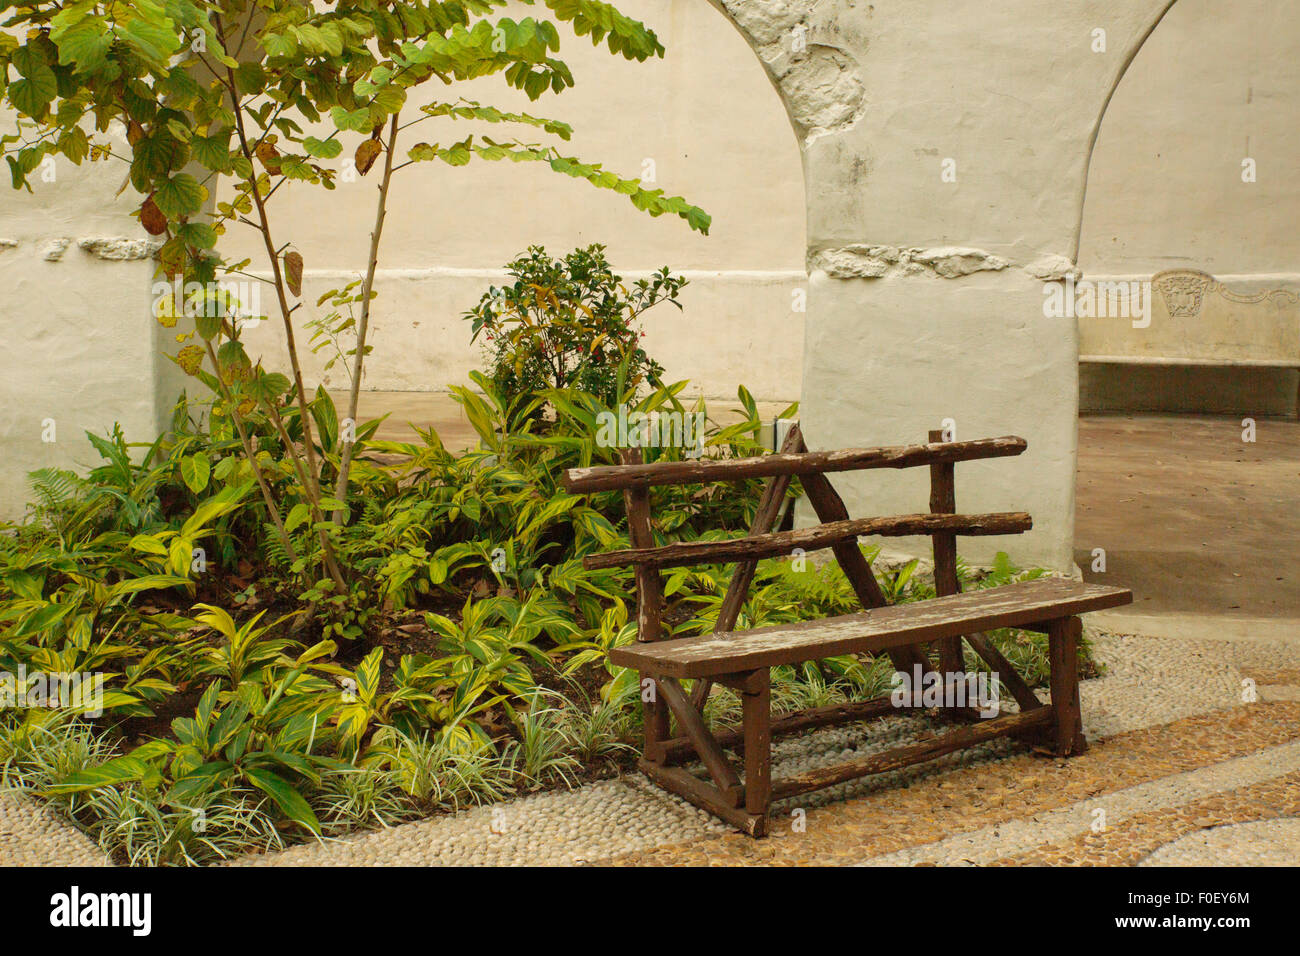 Garden at The Alamo, San Antonio Texas, USA  - Now a tourist attraction, the garden is in back of the fortress. Stock Photo